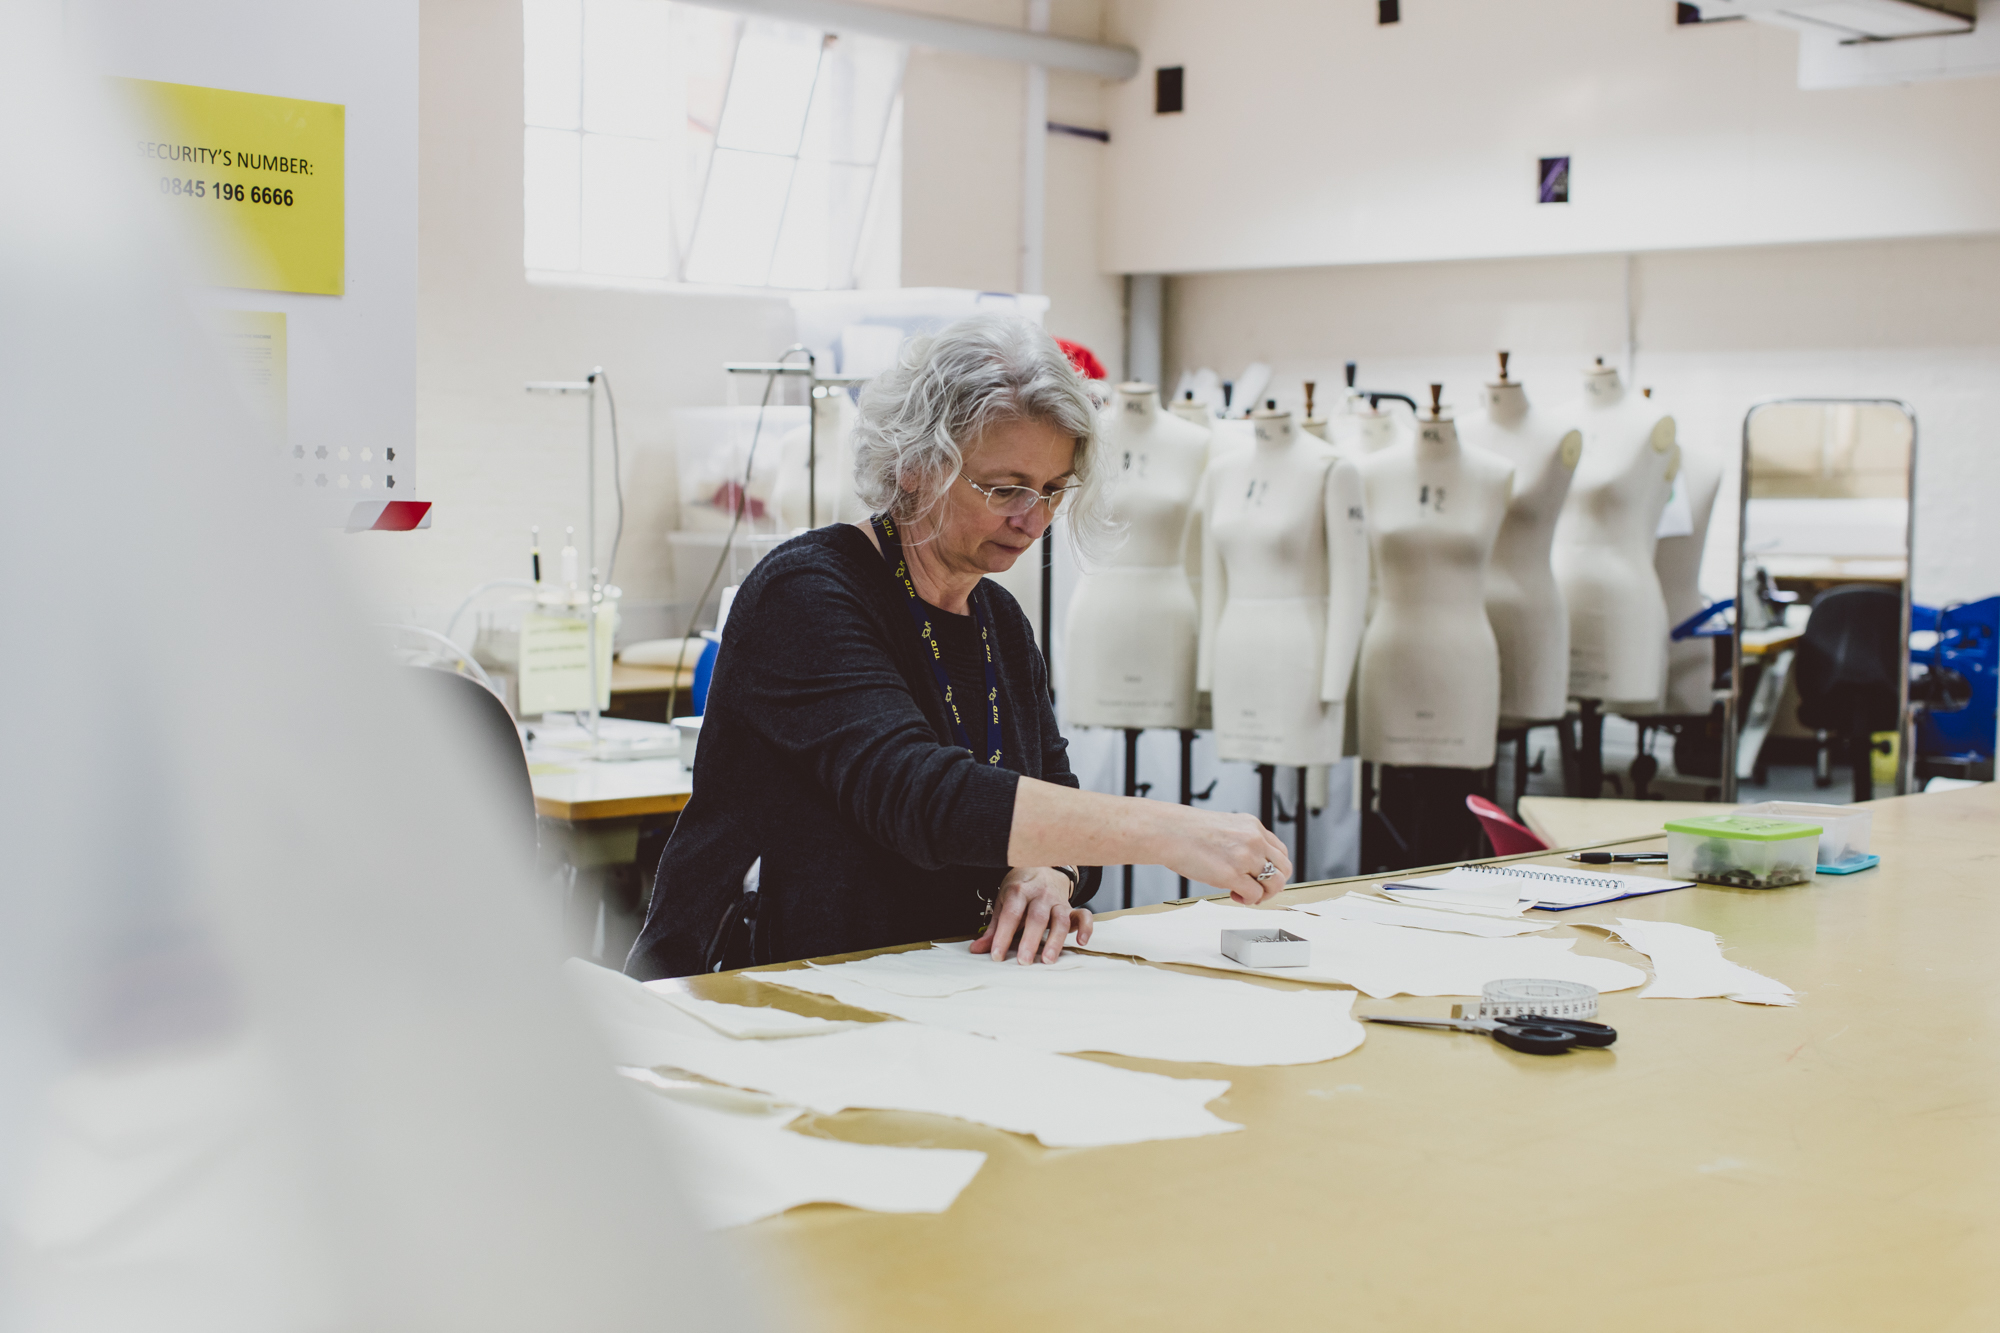 Technical Officer working in Fashion Design Studio